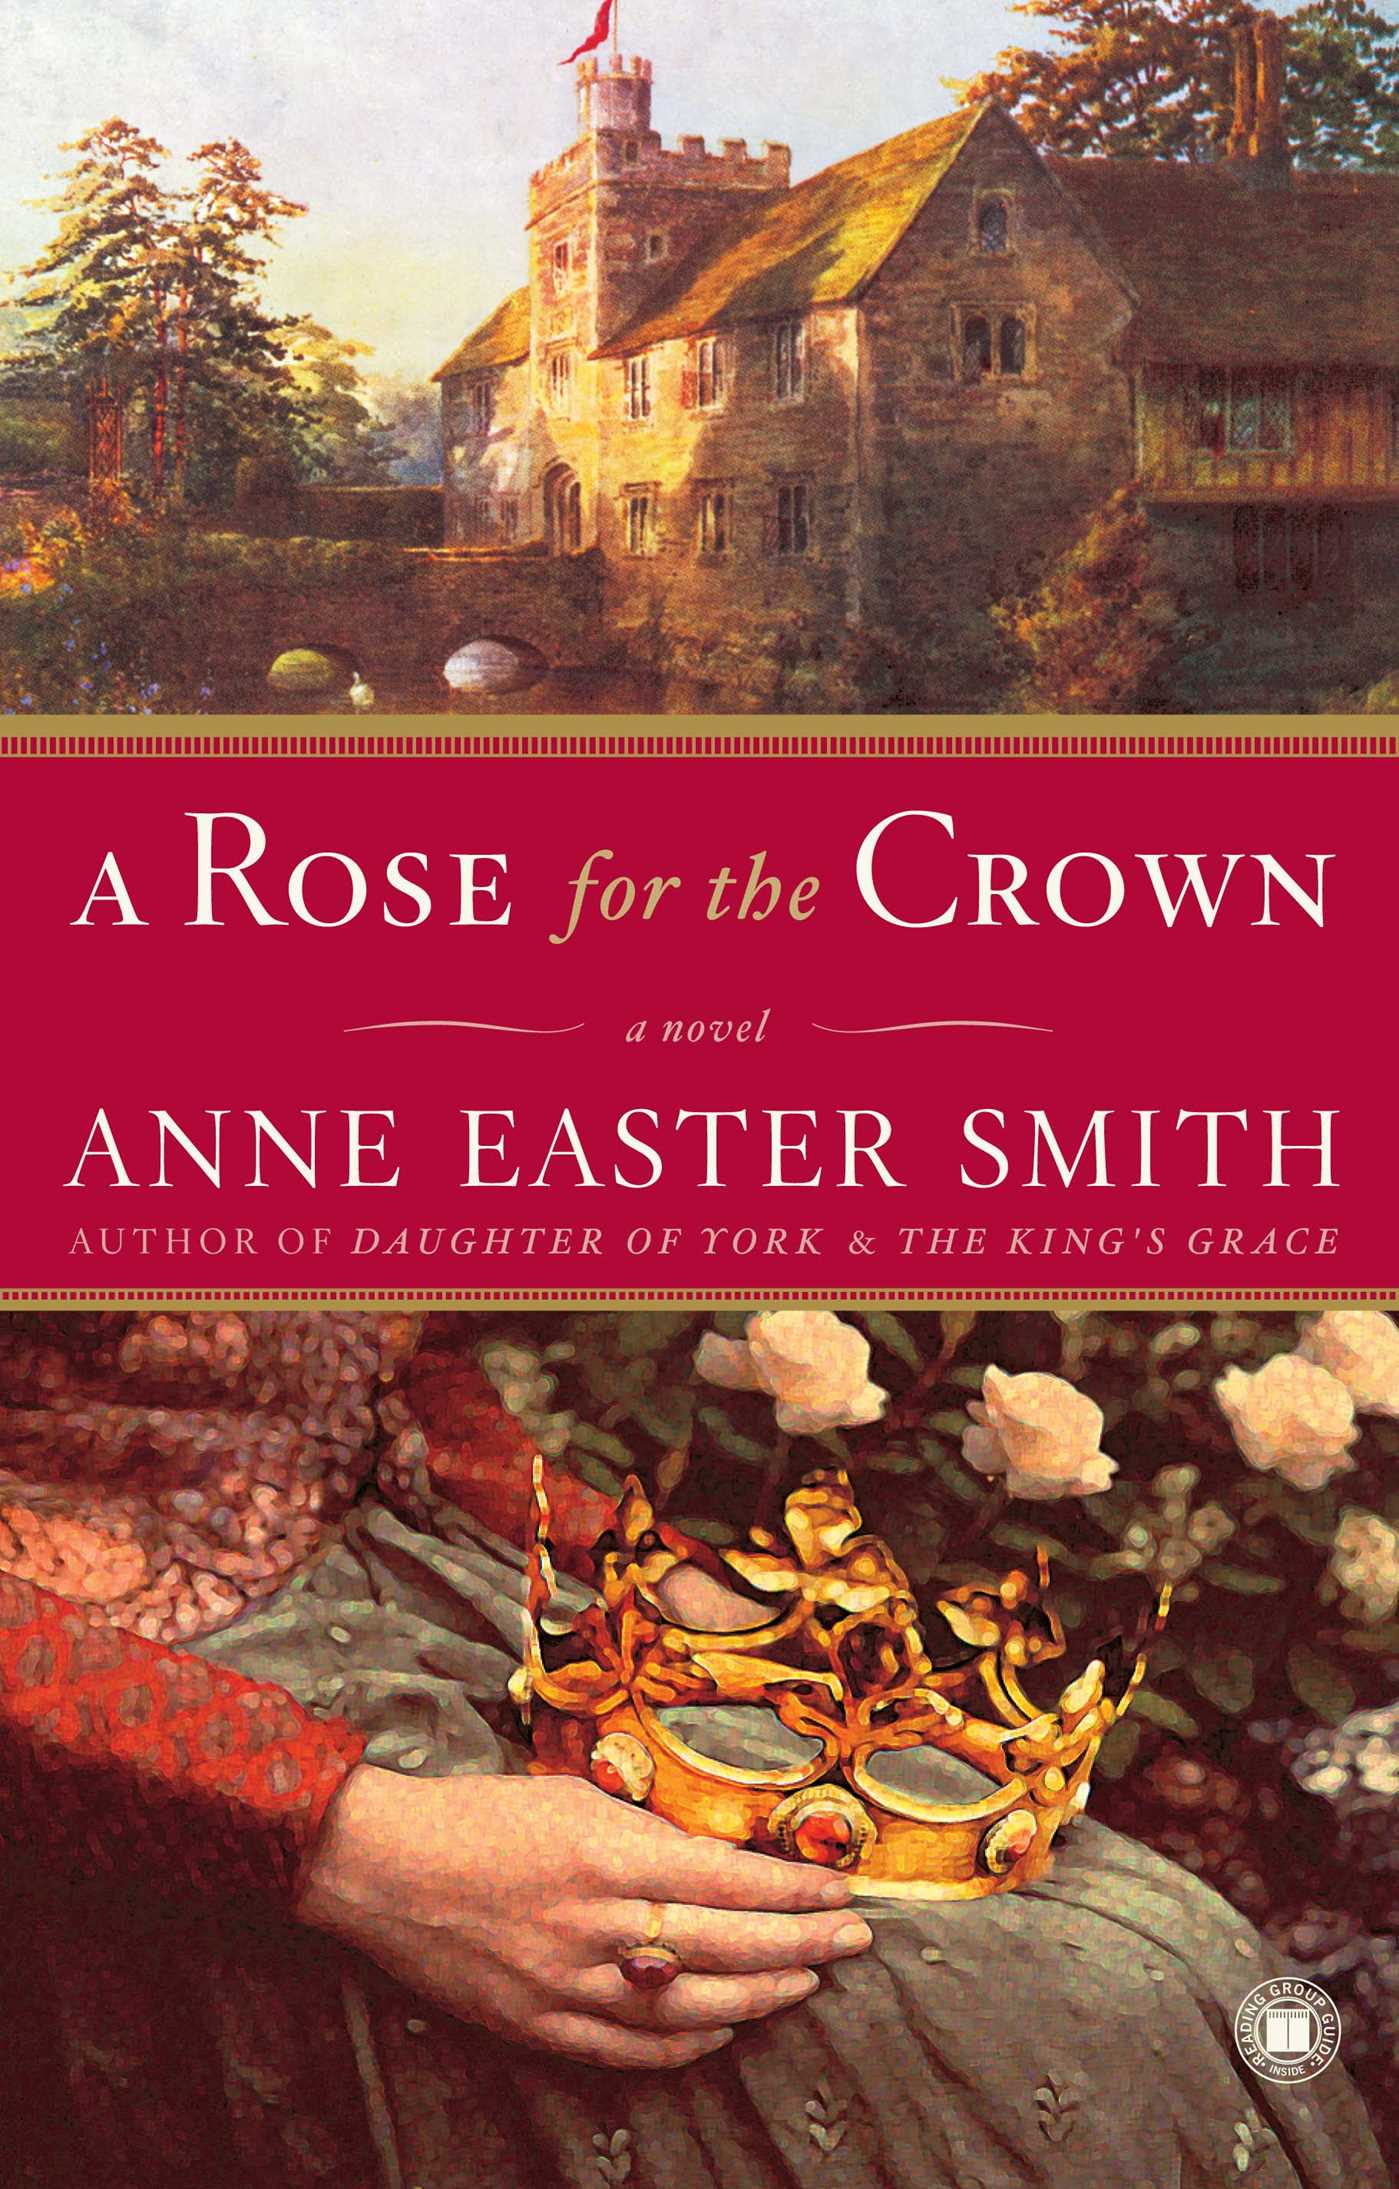 Rose-for-the-crown-9781439144497_hr